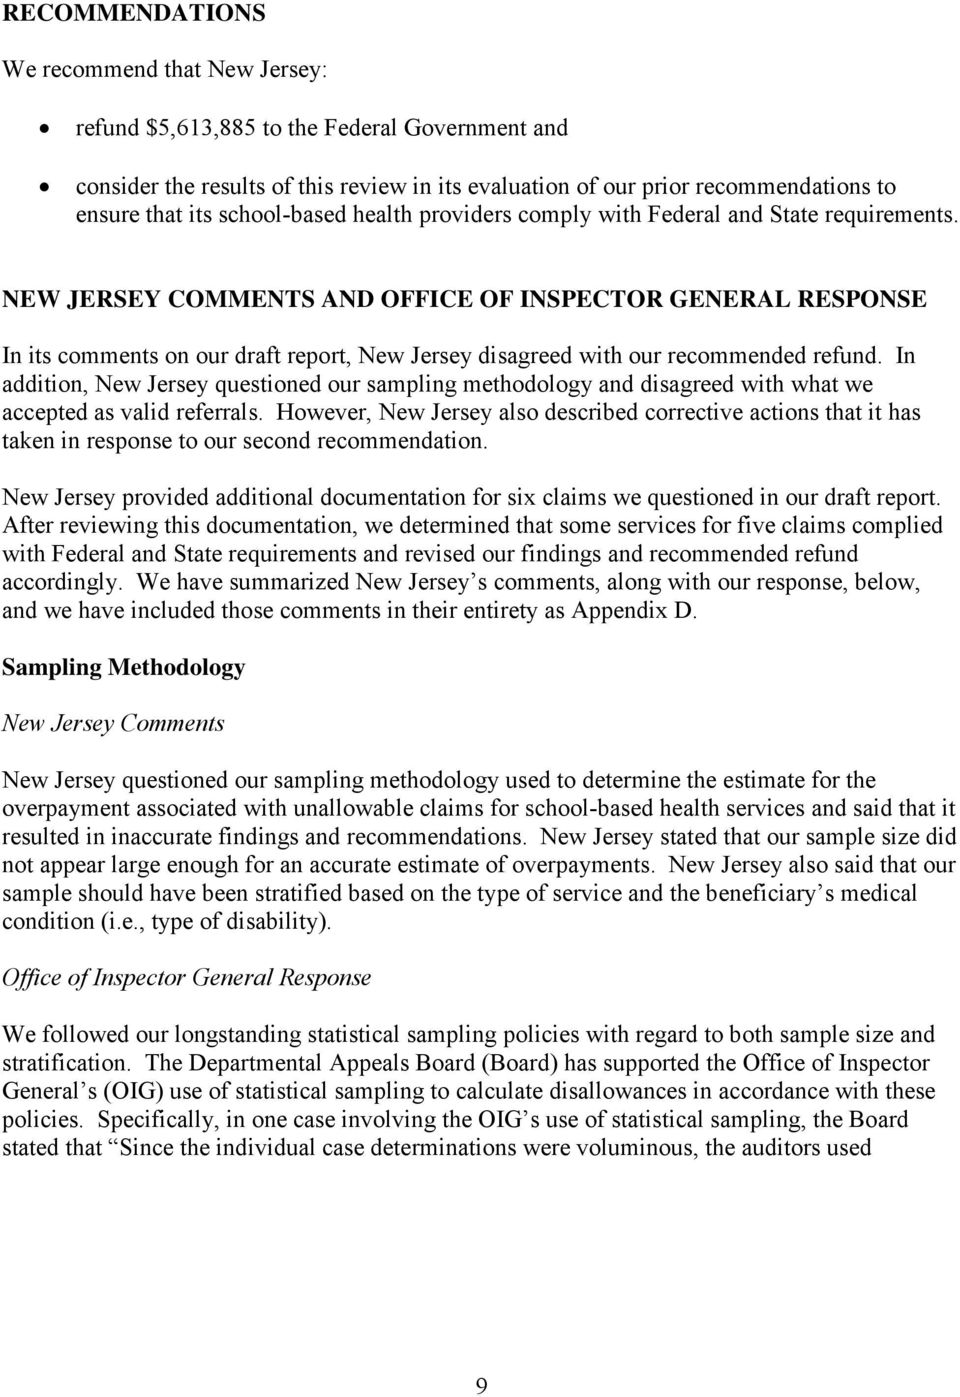 NEW JERSEY COMMENTS AND OFFICE OF INSPECTOR GENERAL RESPONSE In its comments on our draft report, New Jersey disagreed with our recommended refund.